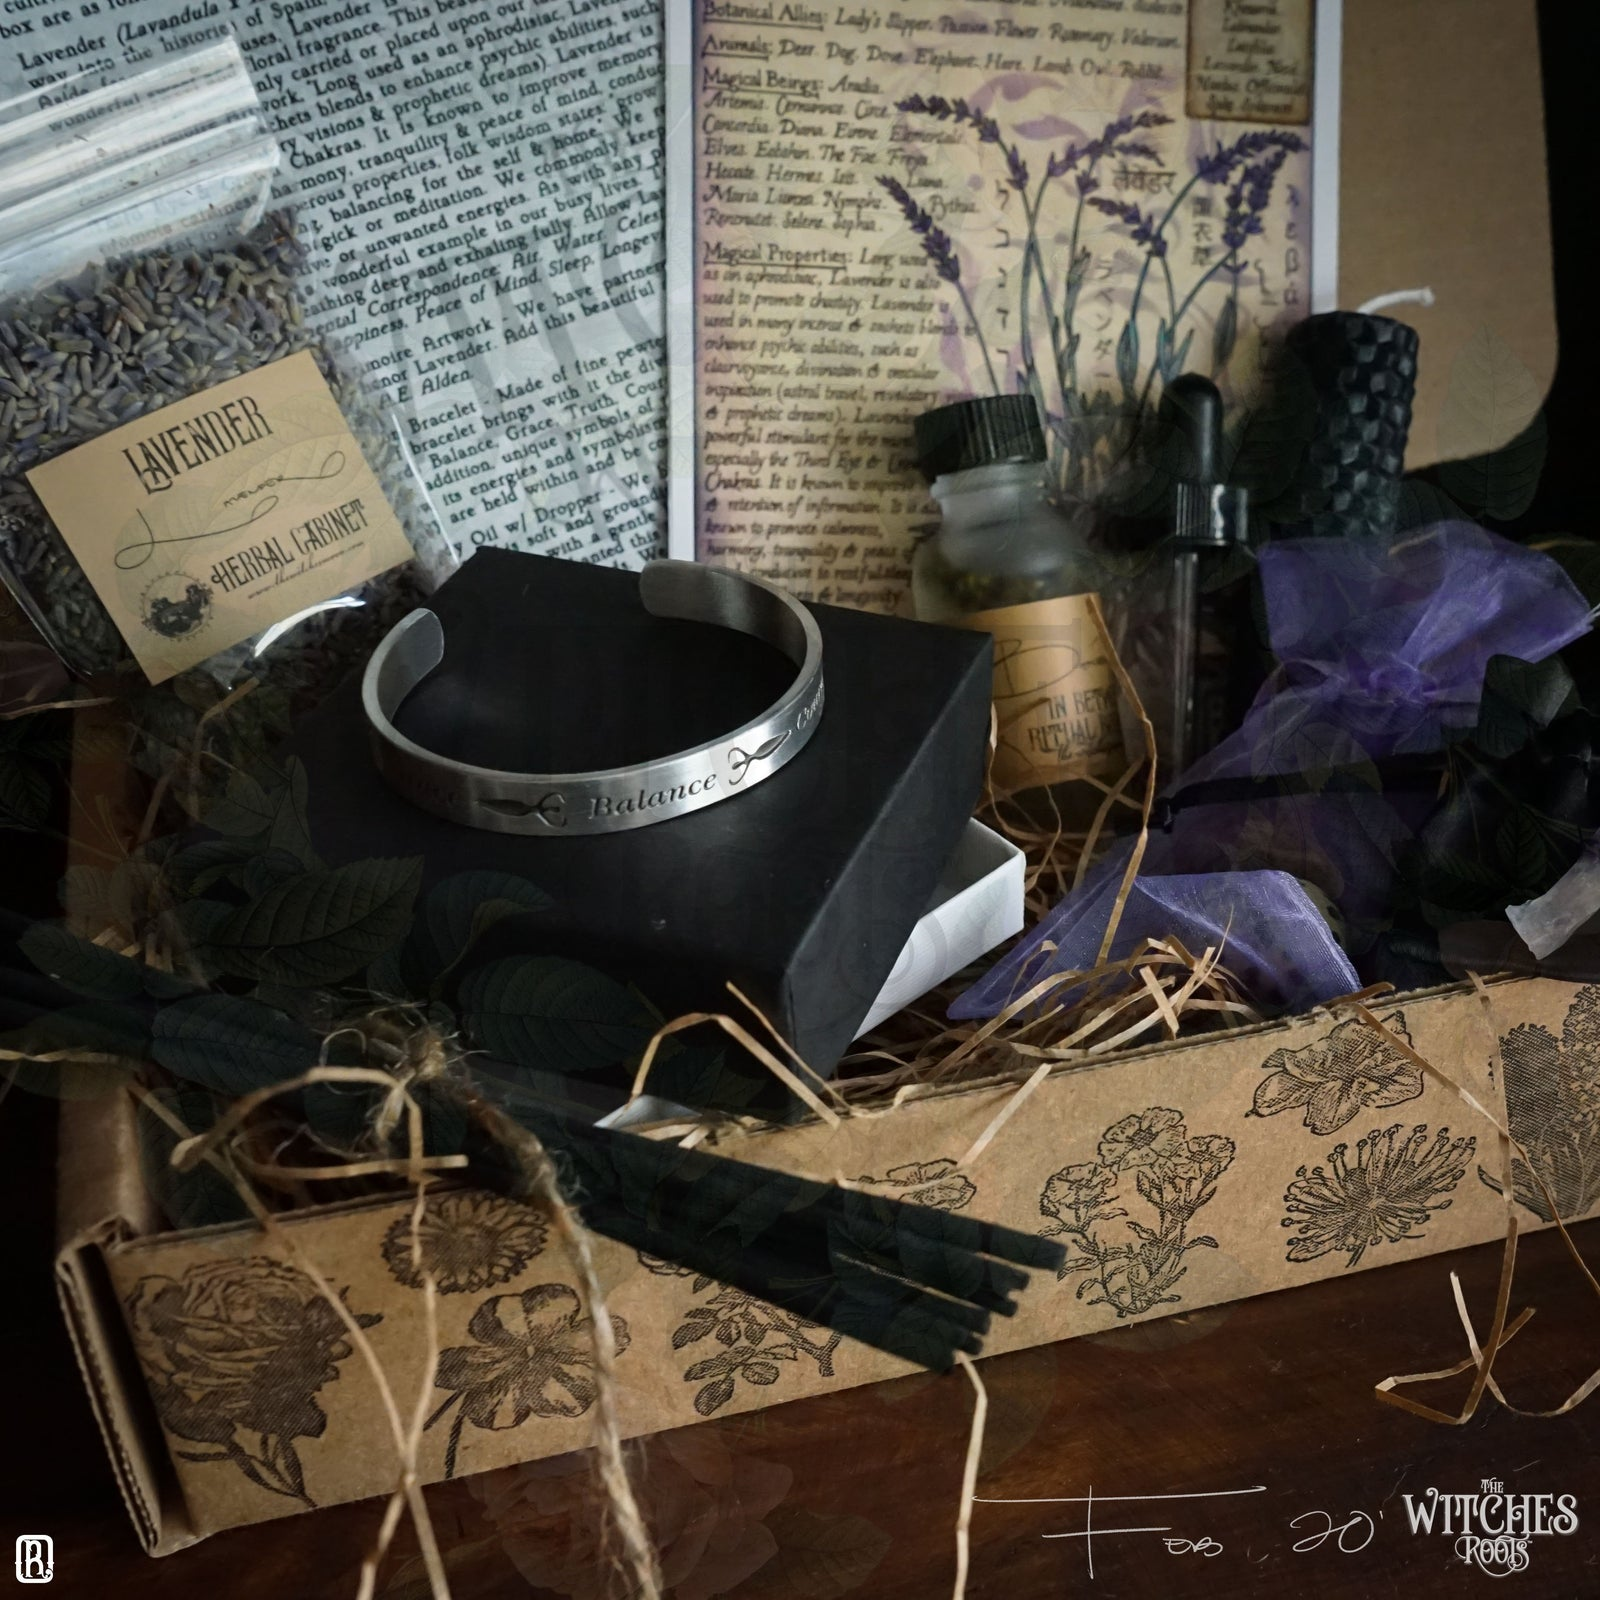 The Witches Roots™ - Harmony of Mind - February 2020